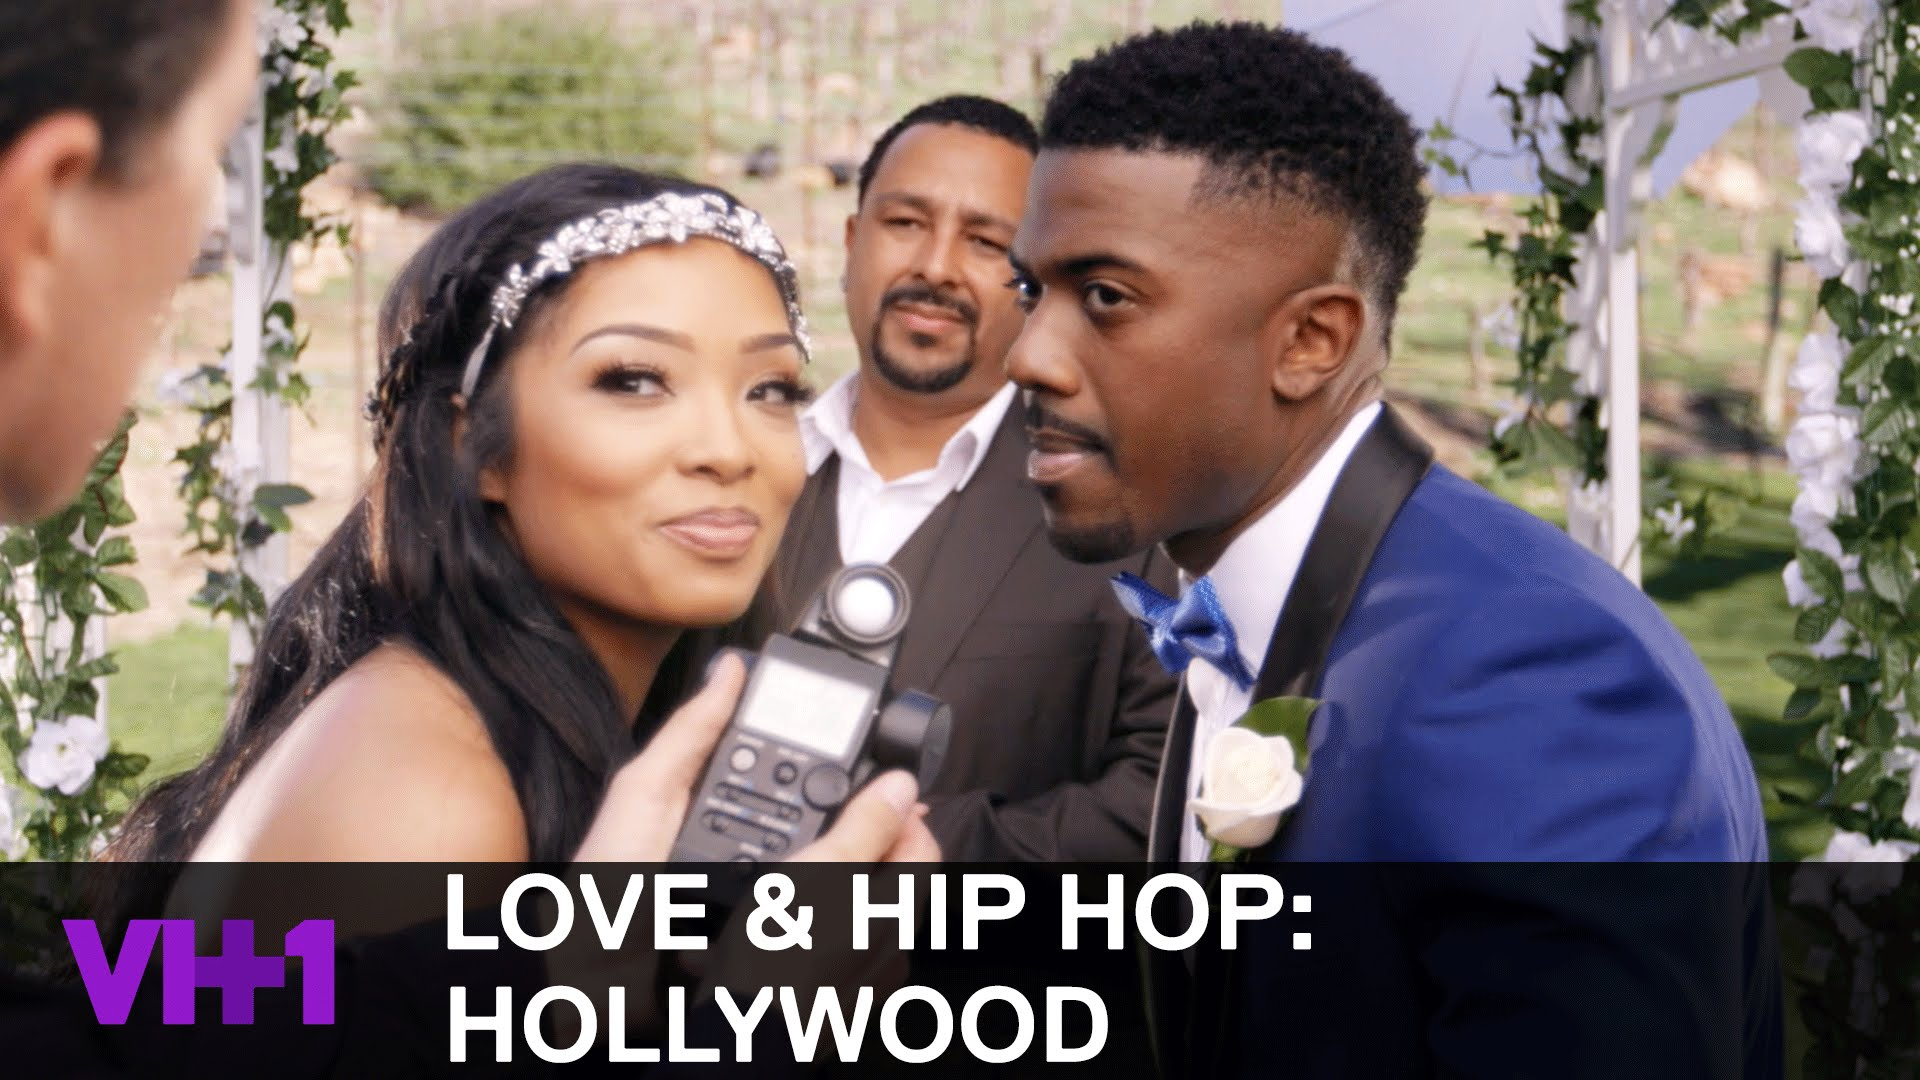 Love & Hip Hop VH1